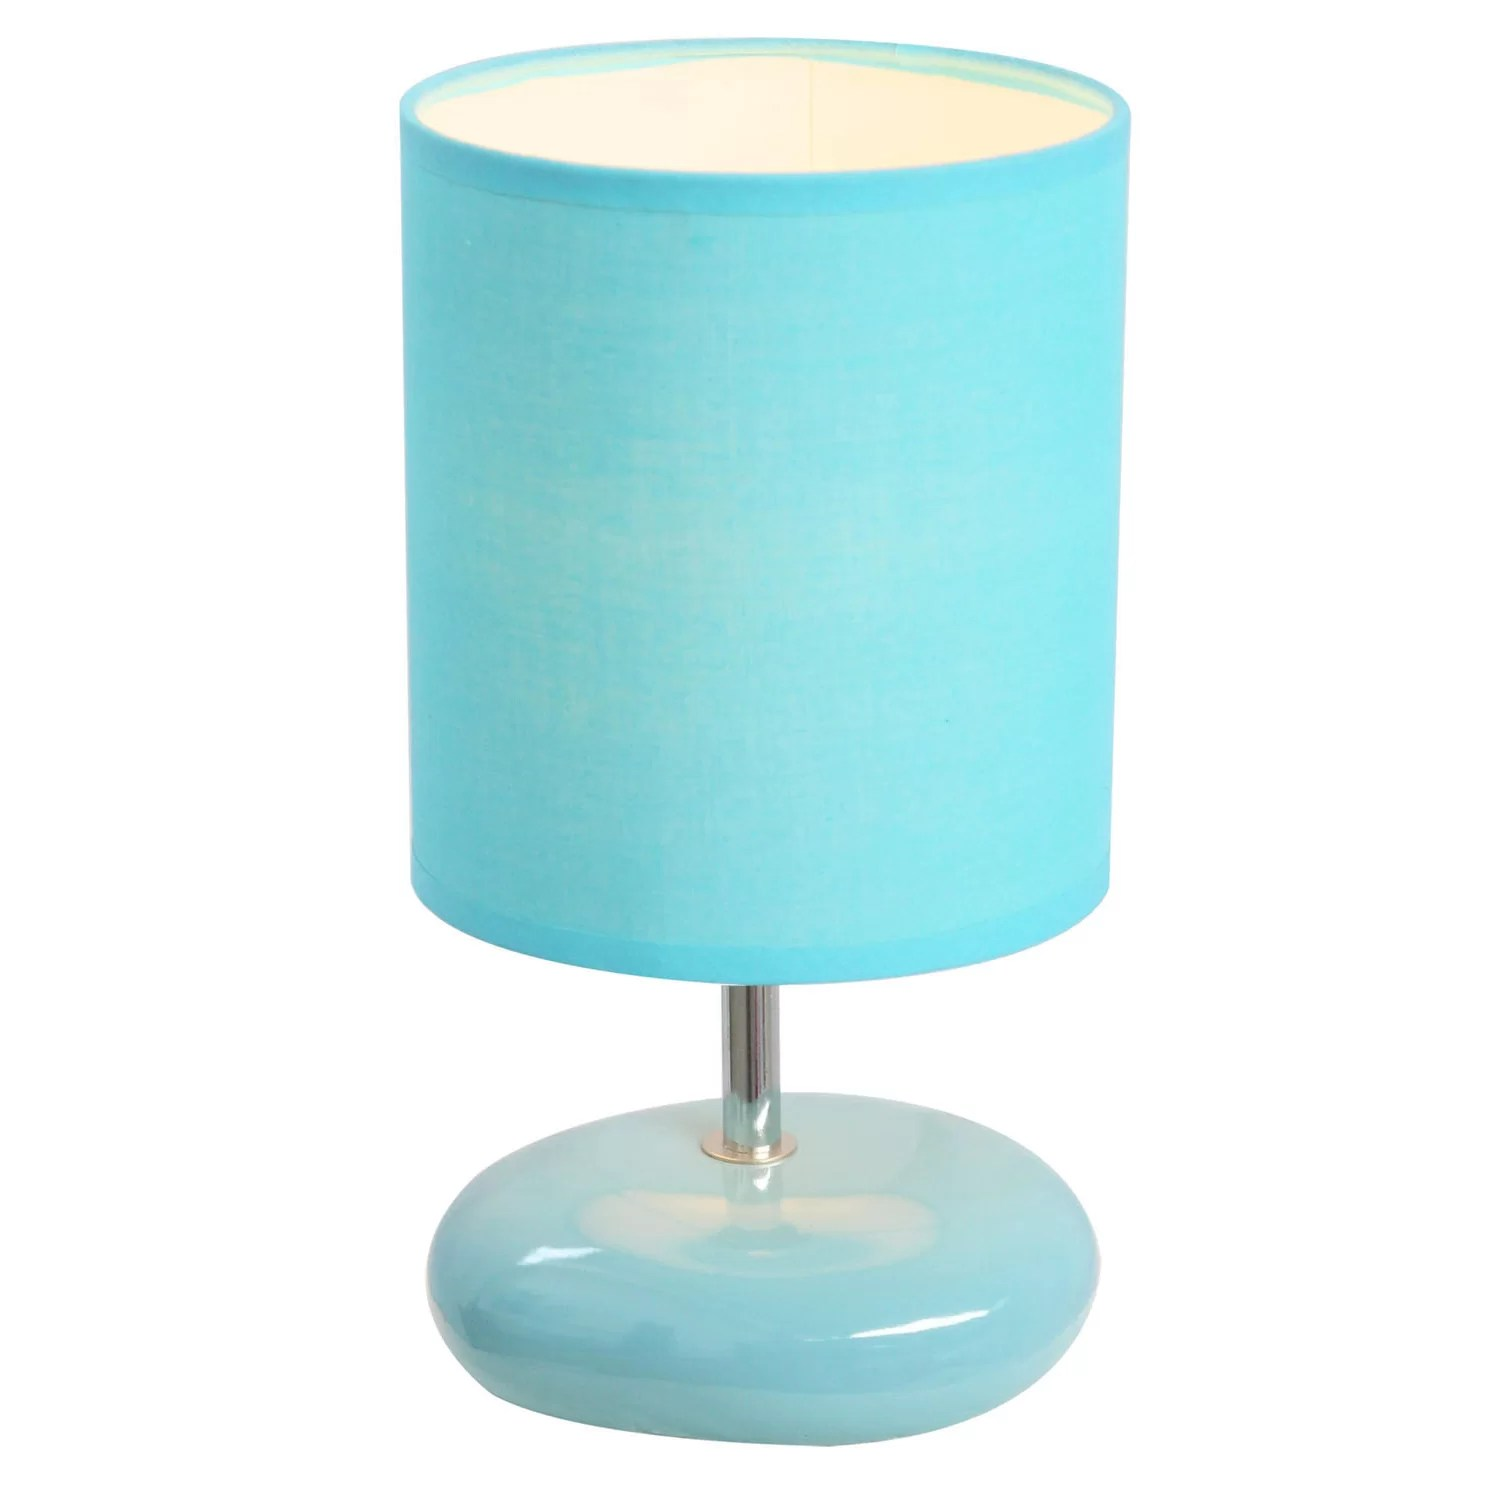 Simple Table Lamp All The Rages Simple Designs 10 24 Quot Table Lamp And Reviews